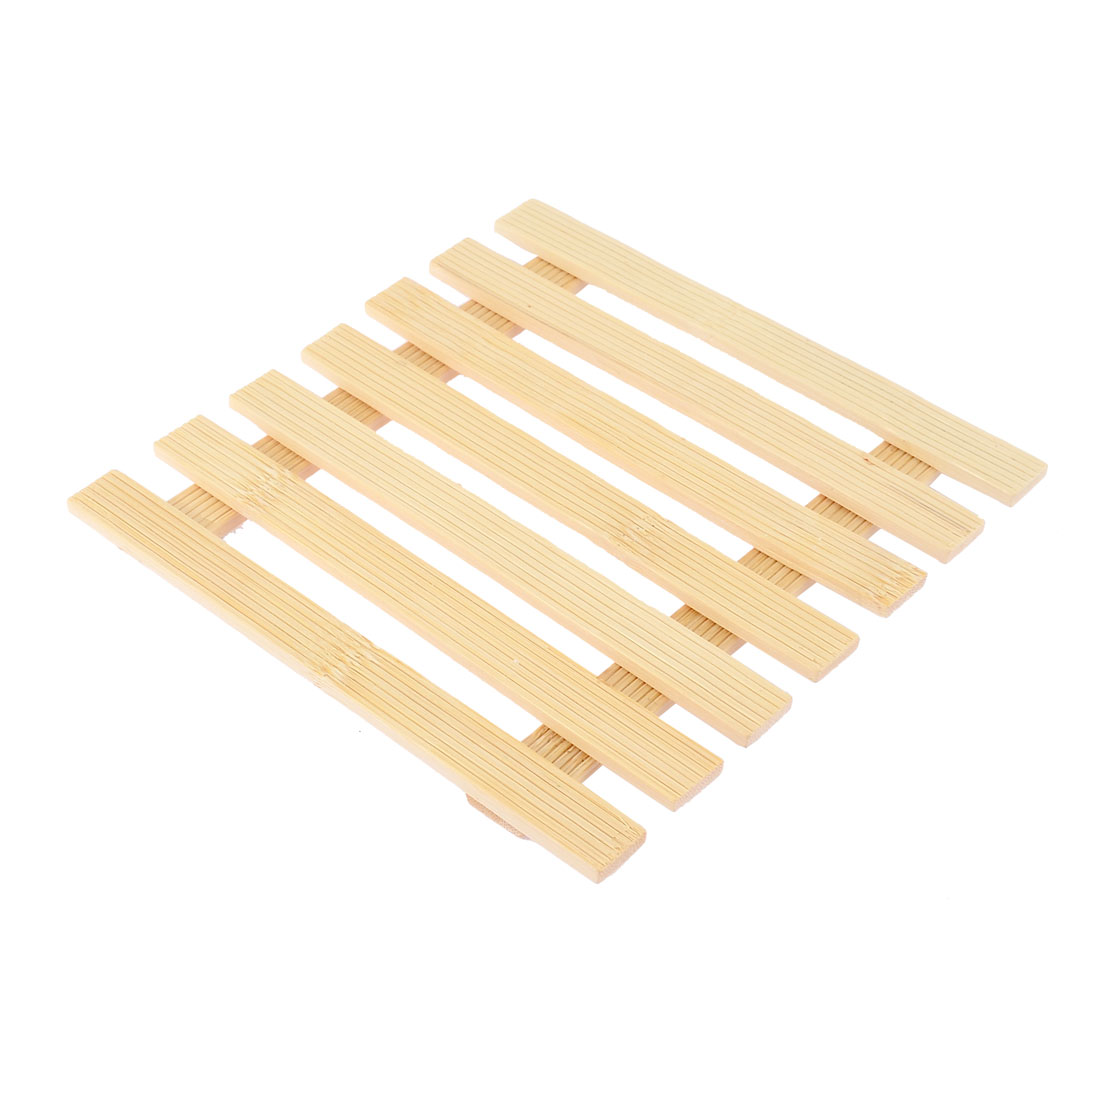 Kitchen Table Cup Dishes Bamboo Square Shape Insulation Mat 17 x 17cm